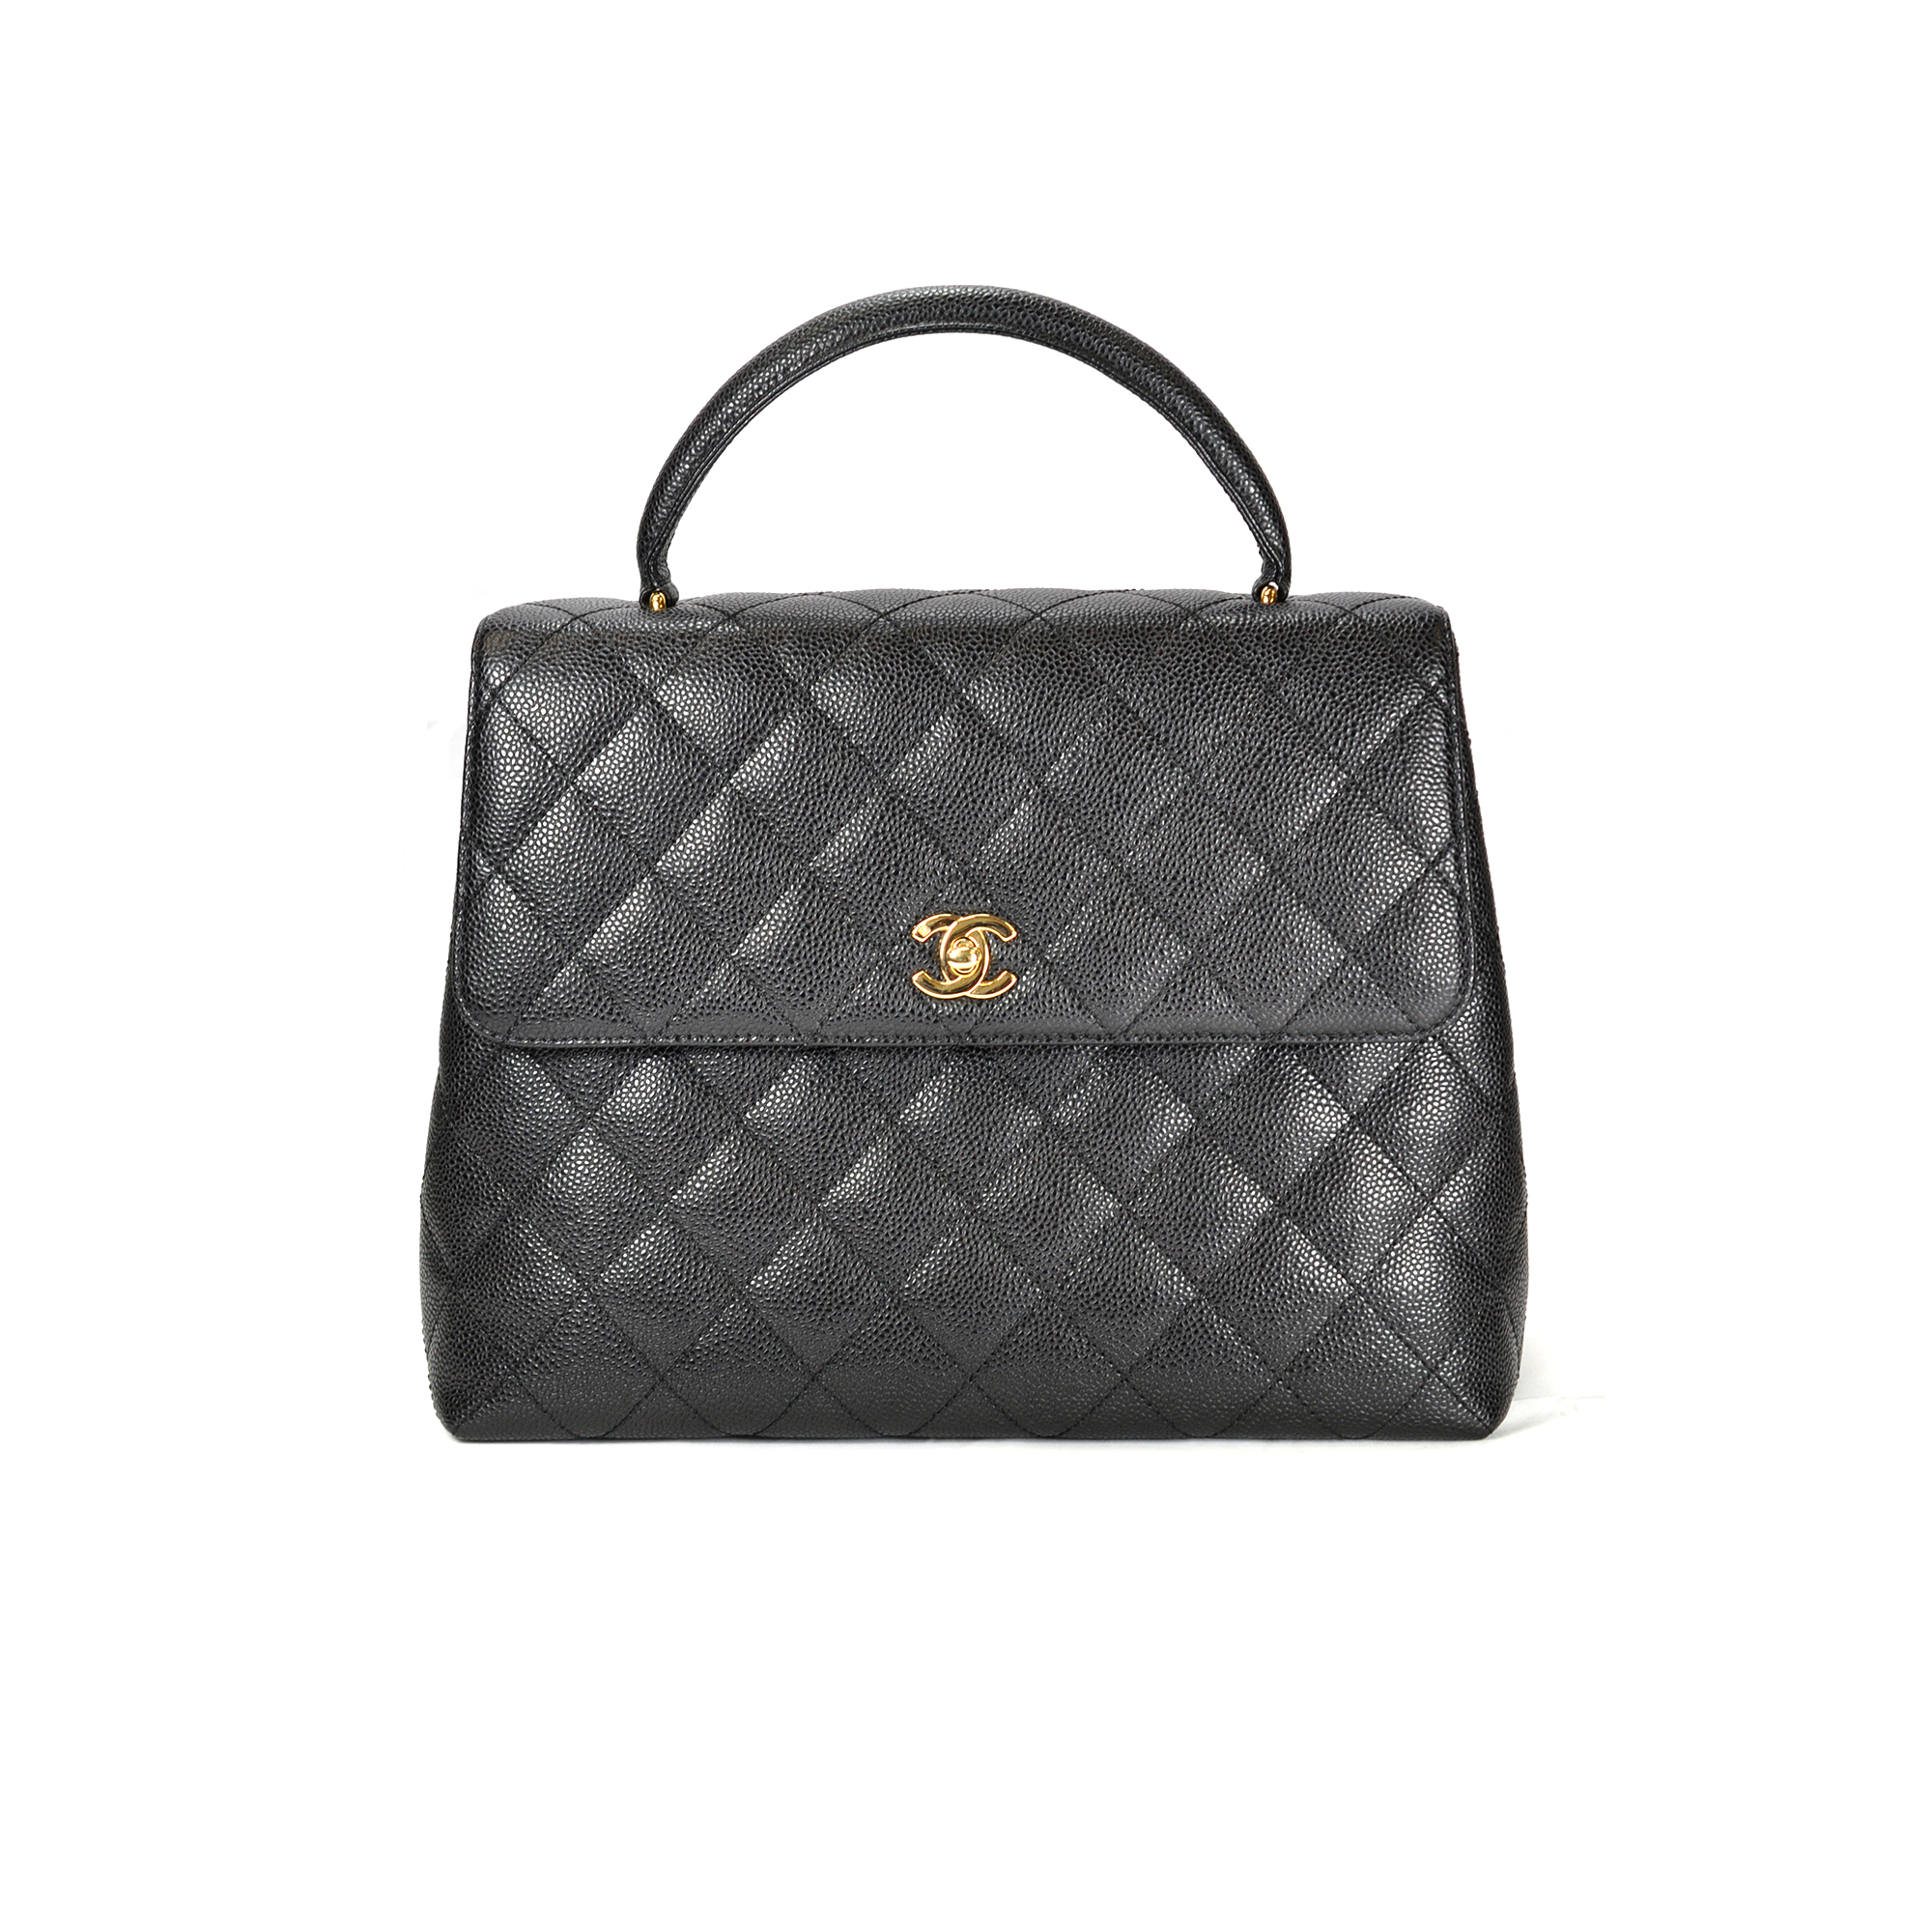 ee79d7ce4b27 Authentic Second Hand Chanel Kelly Quilted Caviar Bag (TFC-107-00016 ...